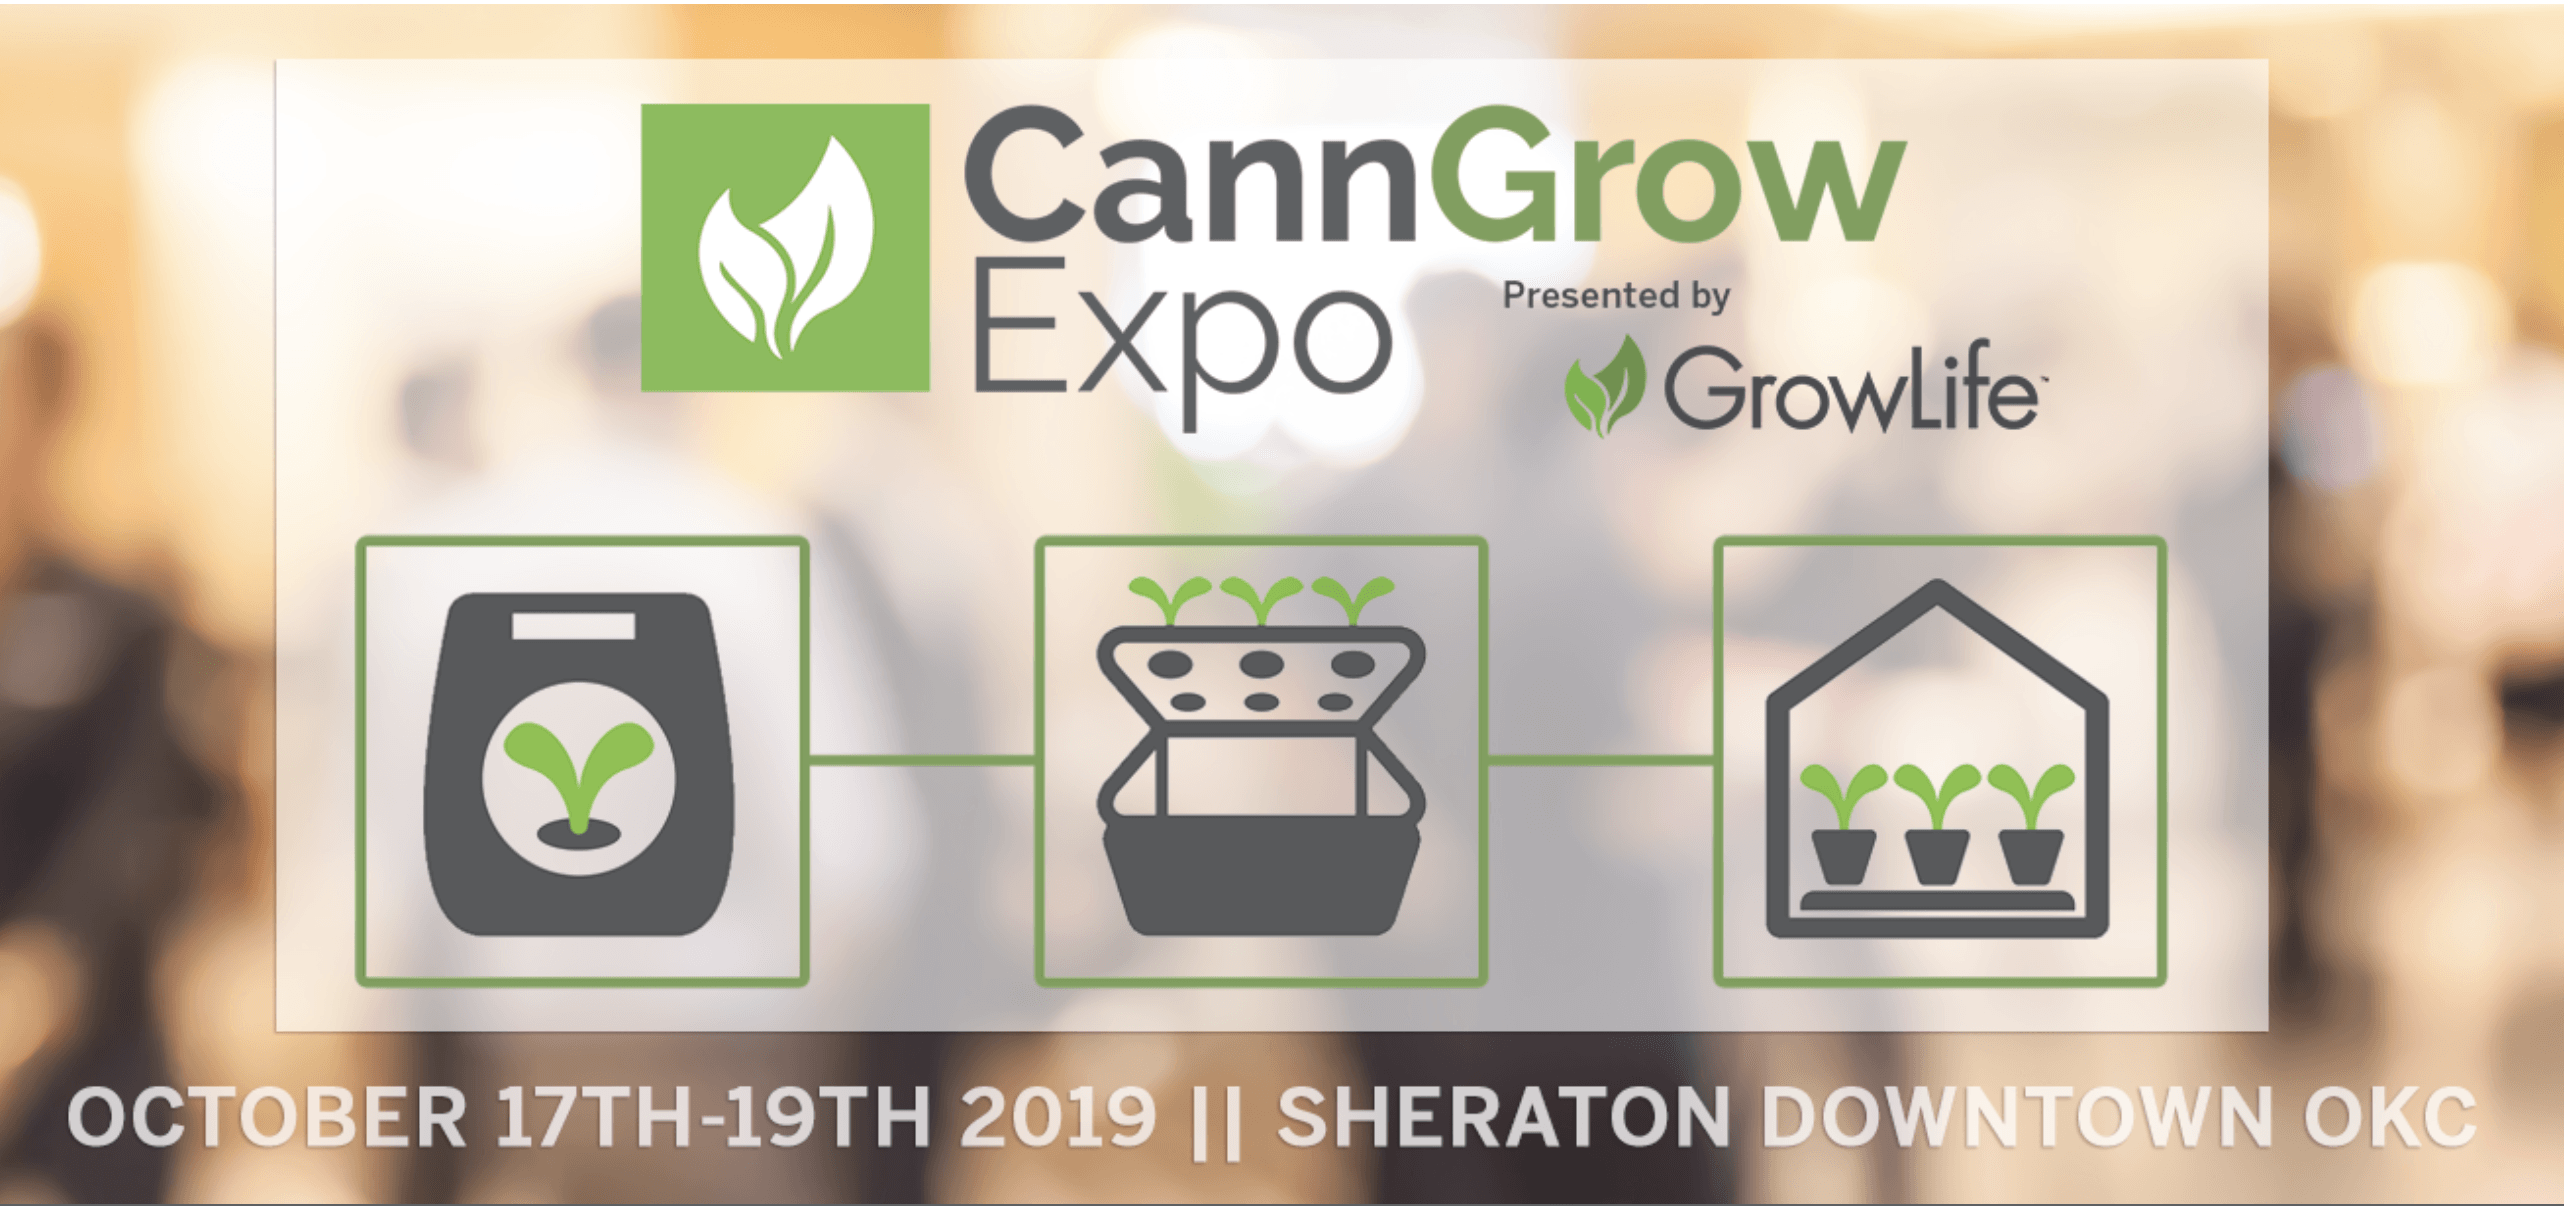 CannGrow Expo OKC